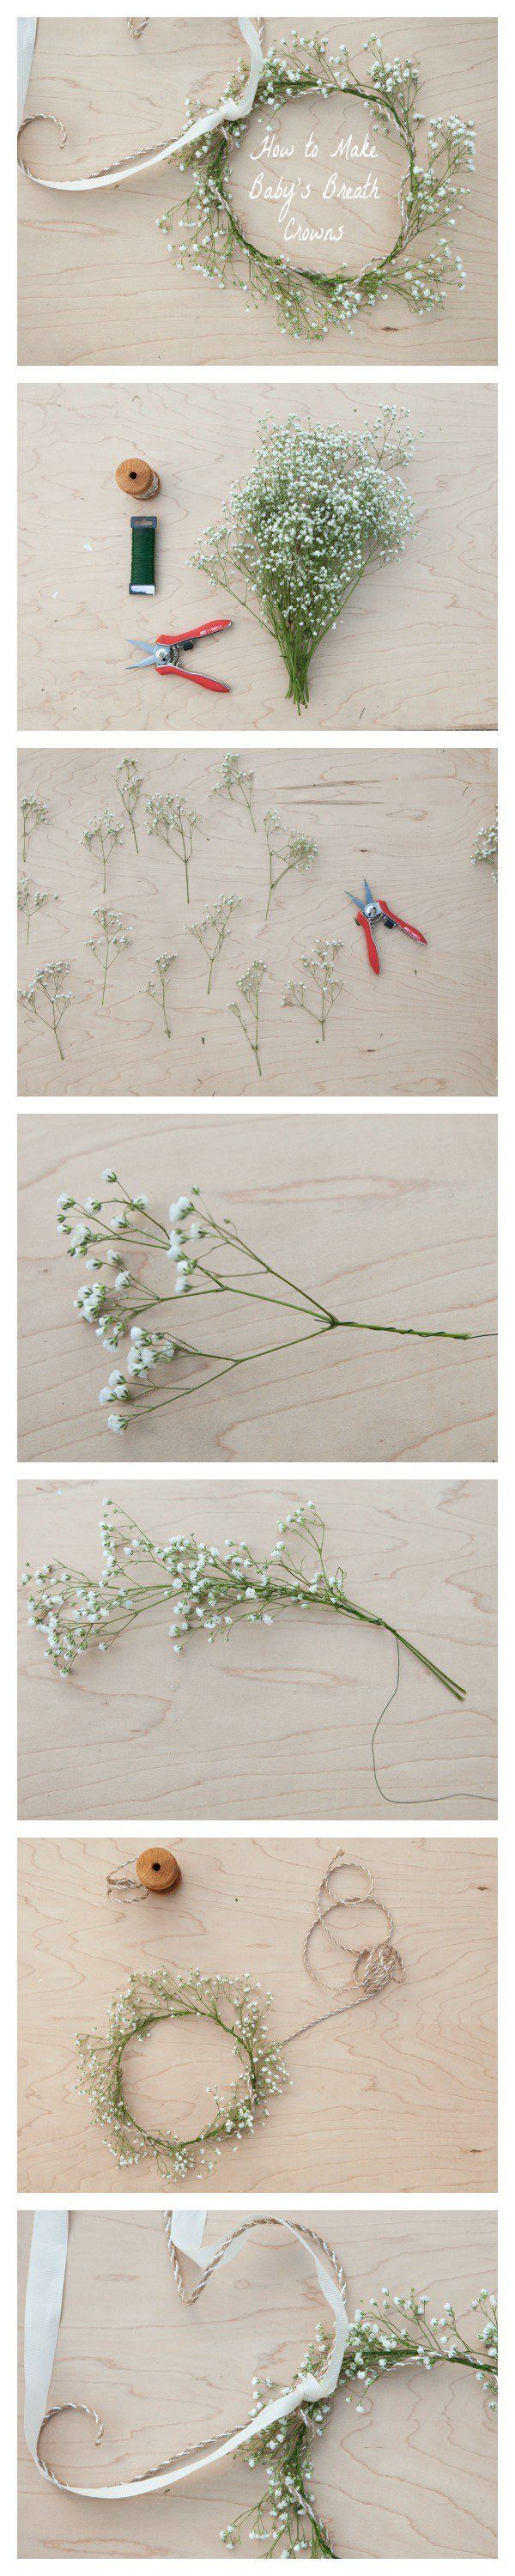 How to Make a Baby's Breath Crown #DIY